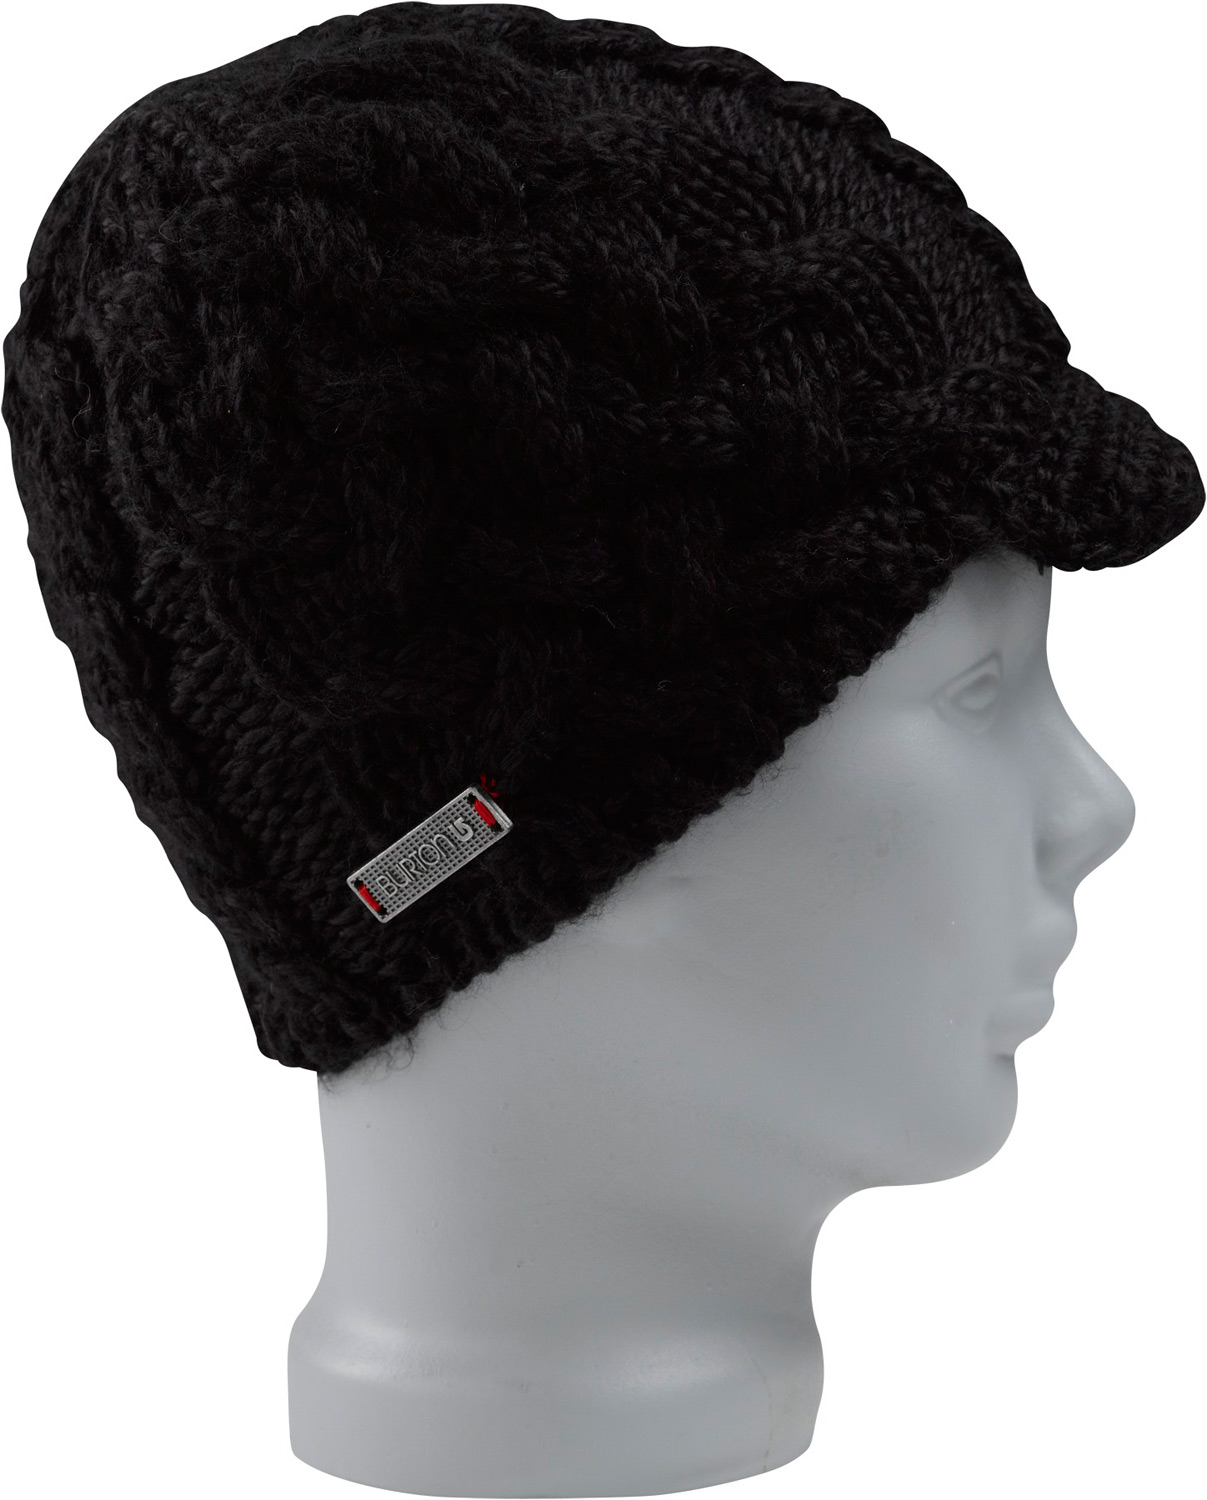 Snowboard Key Features of the Burton Breanie Beanie: 100% Ice Wool Twisted Yarn Brimmed Style Skully Fit - $33.00